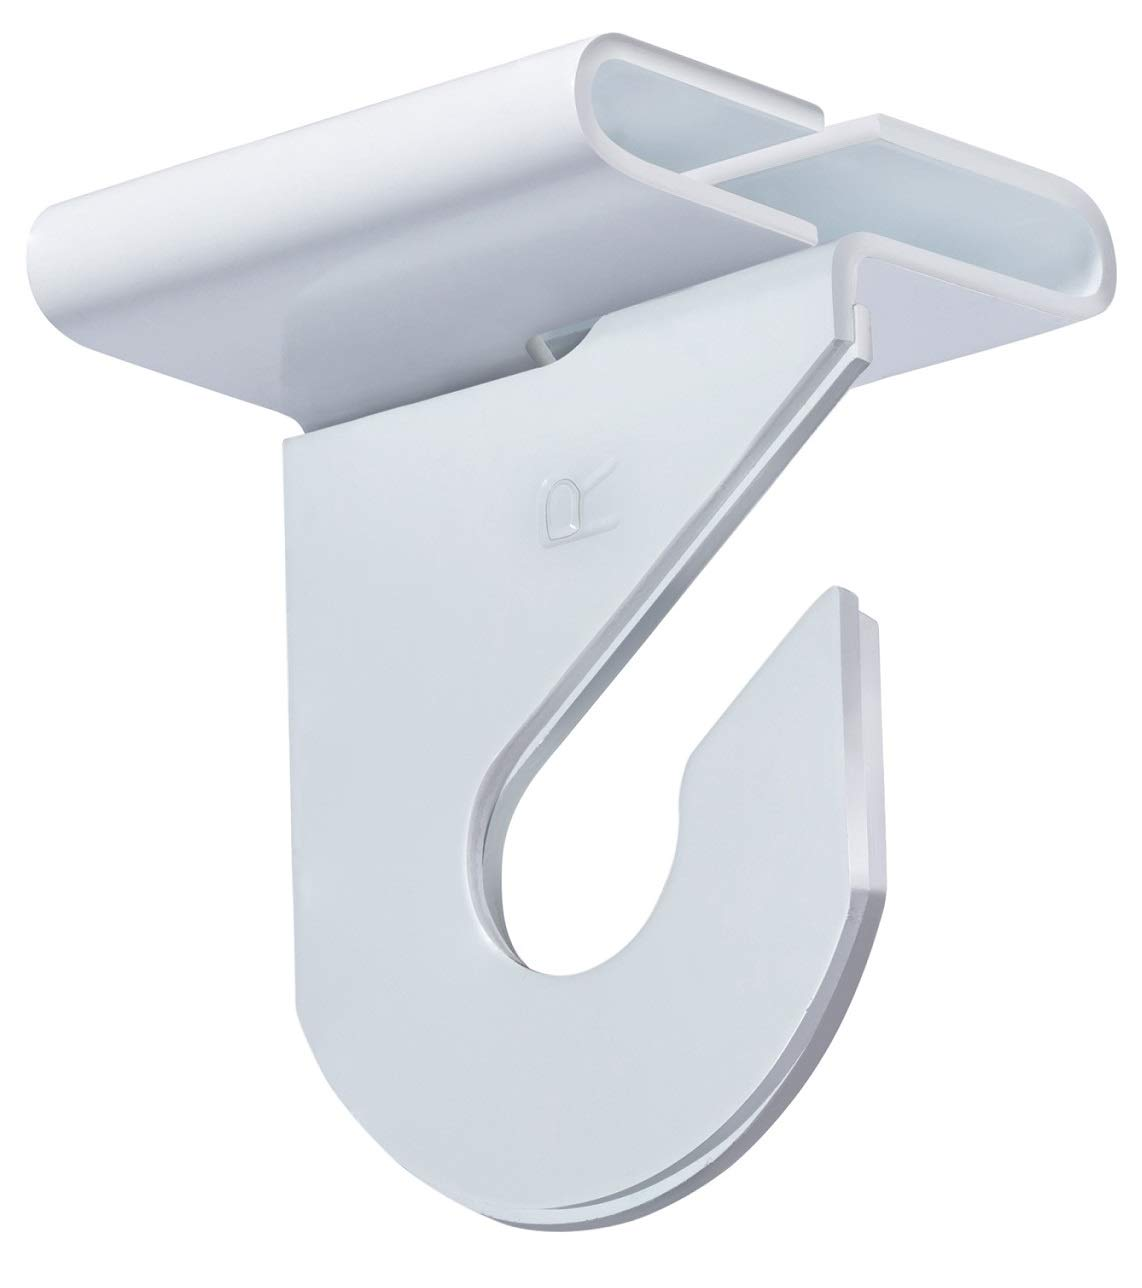 Pack of 50 Pairs – High Strength Aluminum Two Piece Ceiling Hooks for Drop Ceiling T Bars 50 Right and 50 Left White Enamel Finish Holds up to 15 lbs. 1W x 1 ½H